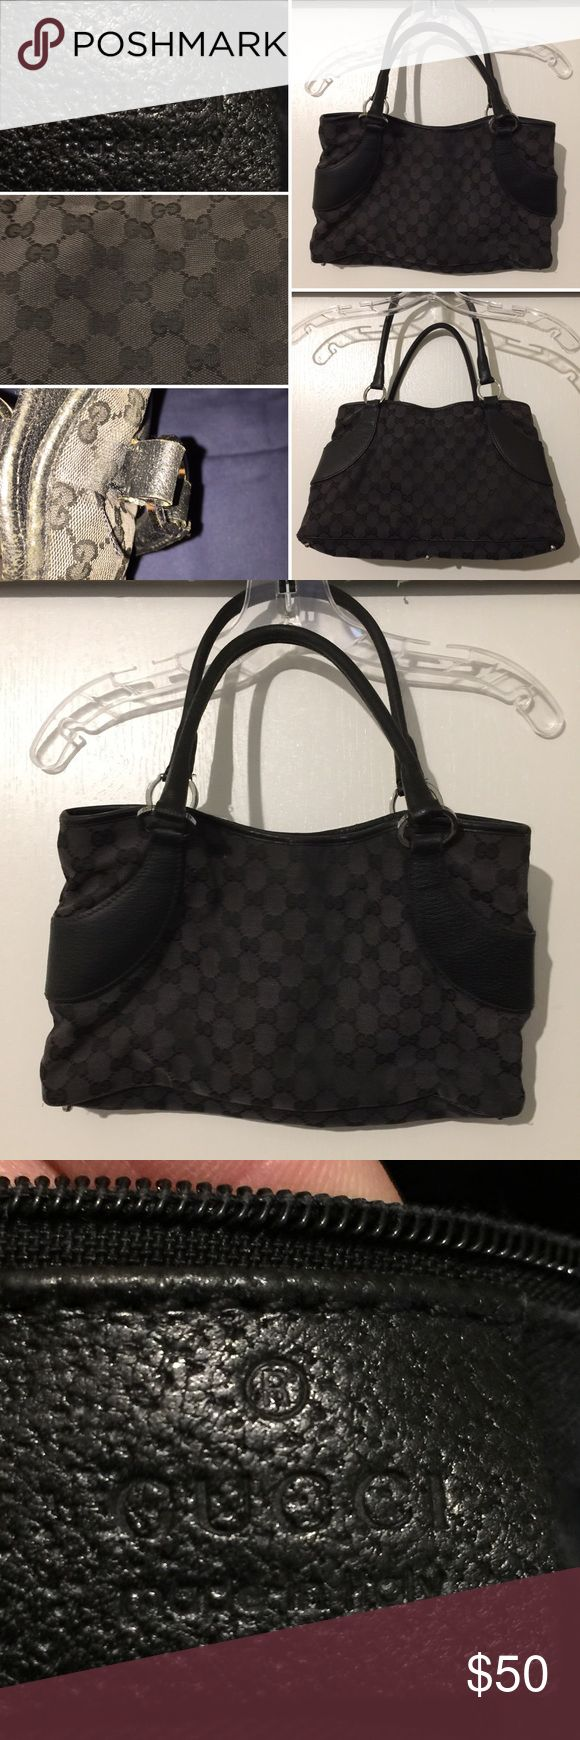 Authentic Gucci Black Purse In bad shape but functional. Authentic Gucci Purse. One of the thread in one of the straps is a little undone. Rim leather is worn down. The material is Gucci logo canvas and the contrast is leather. Gucci Bags Shoulder Bags